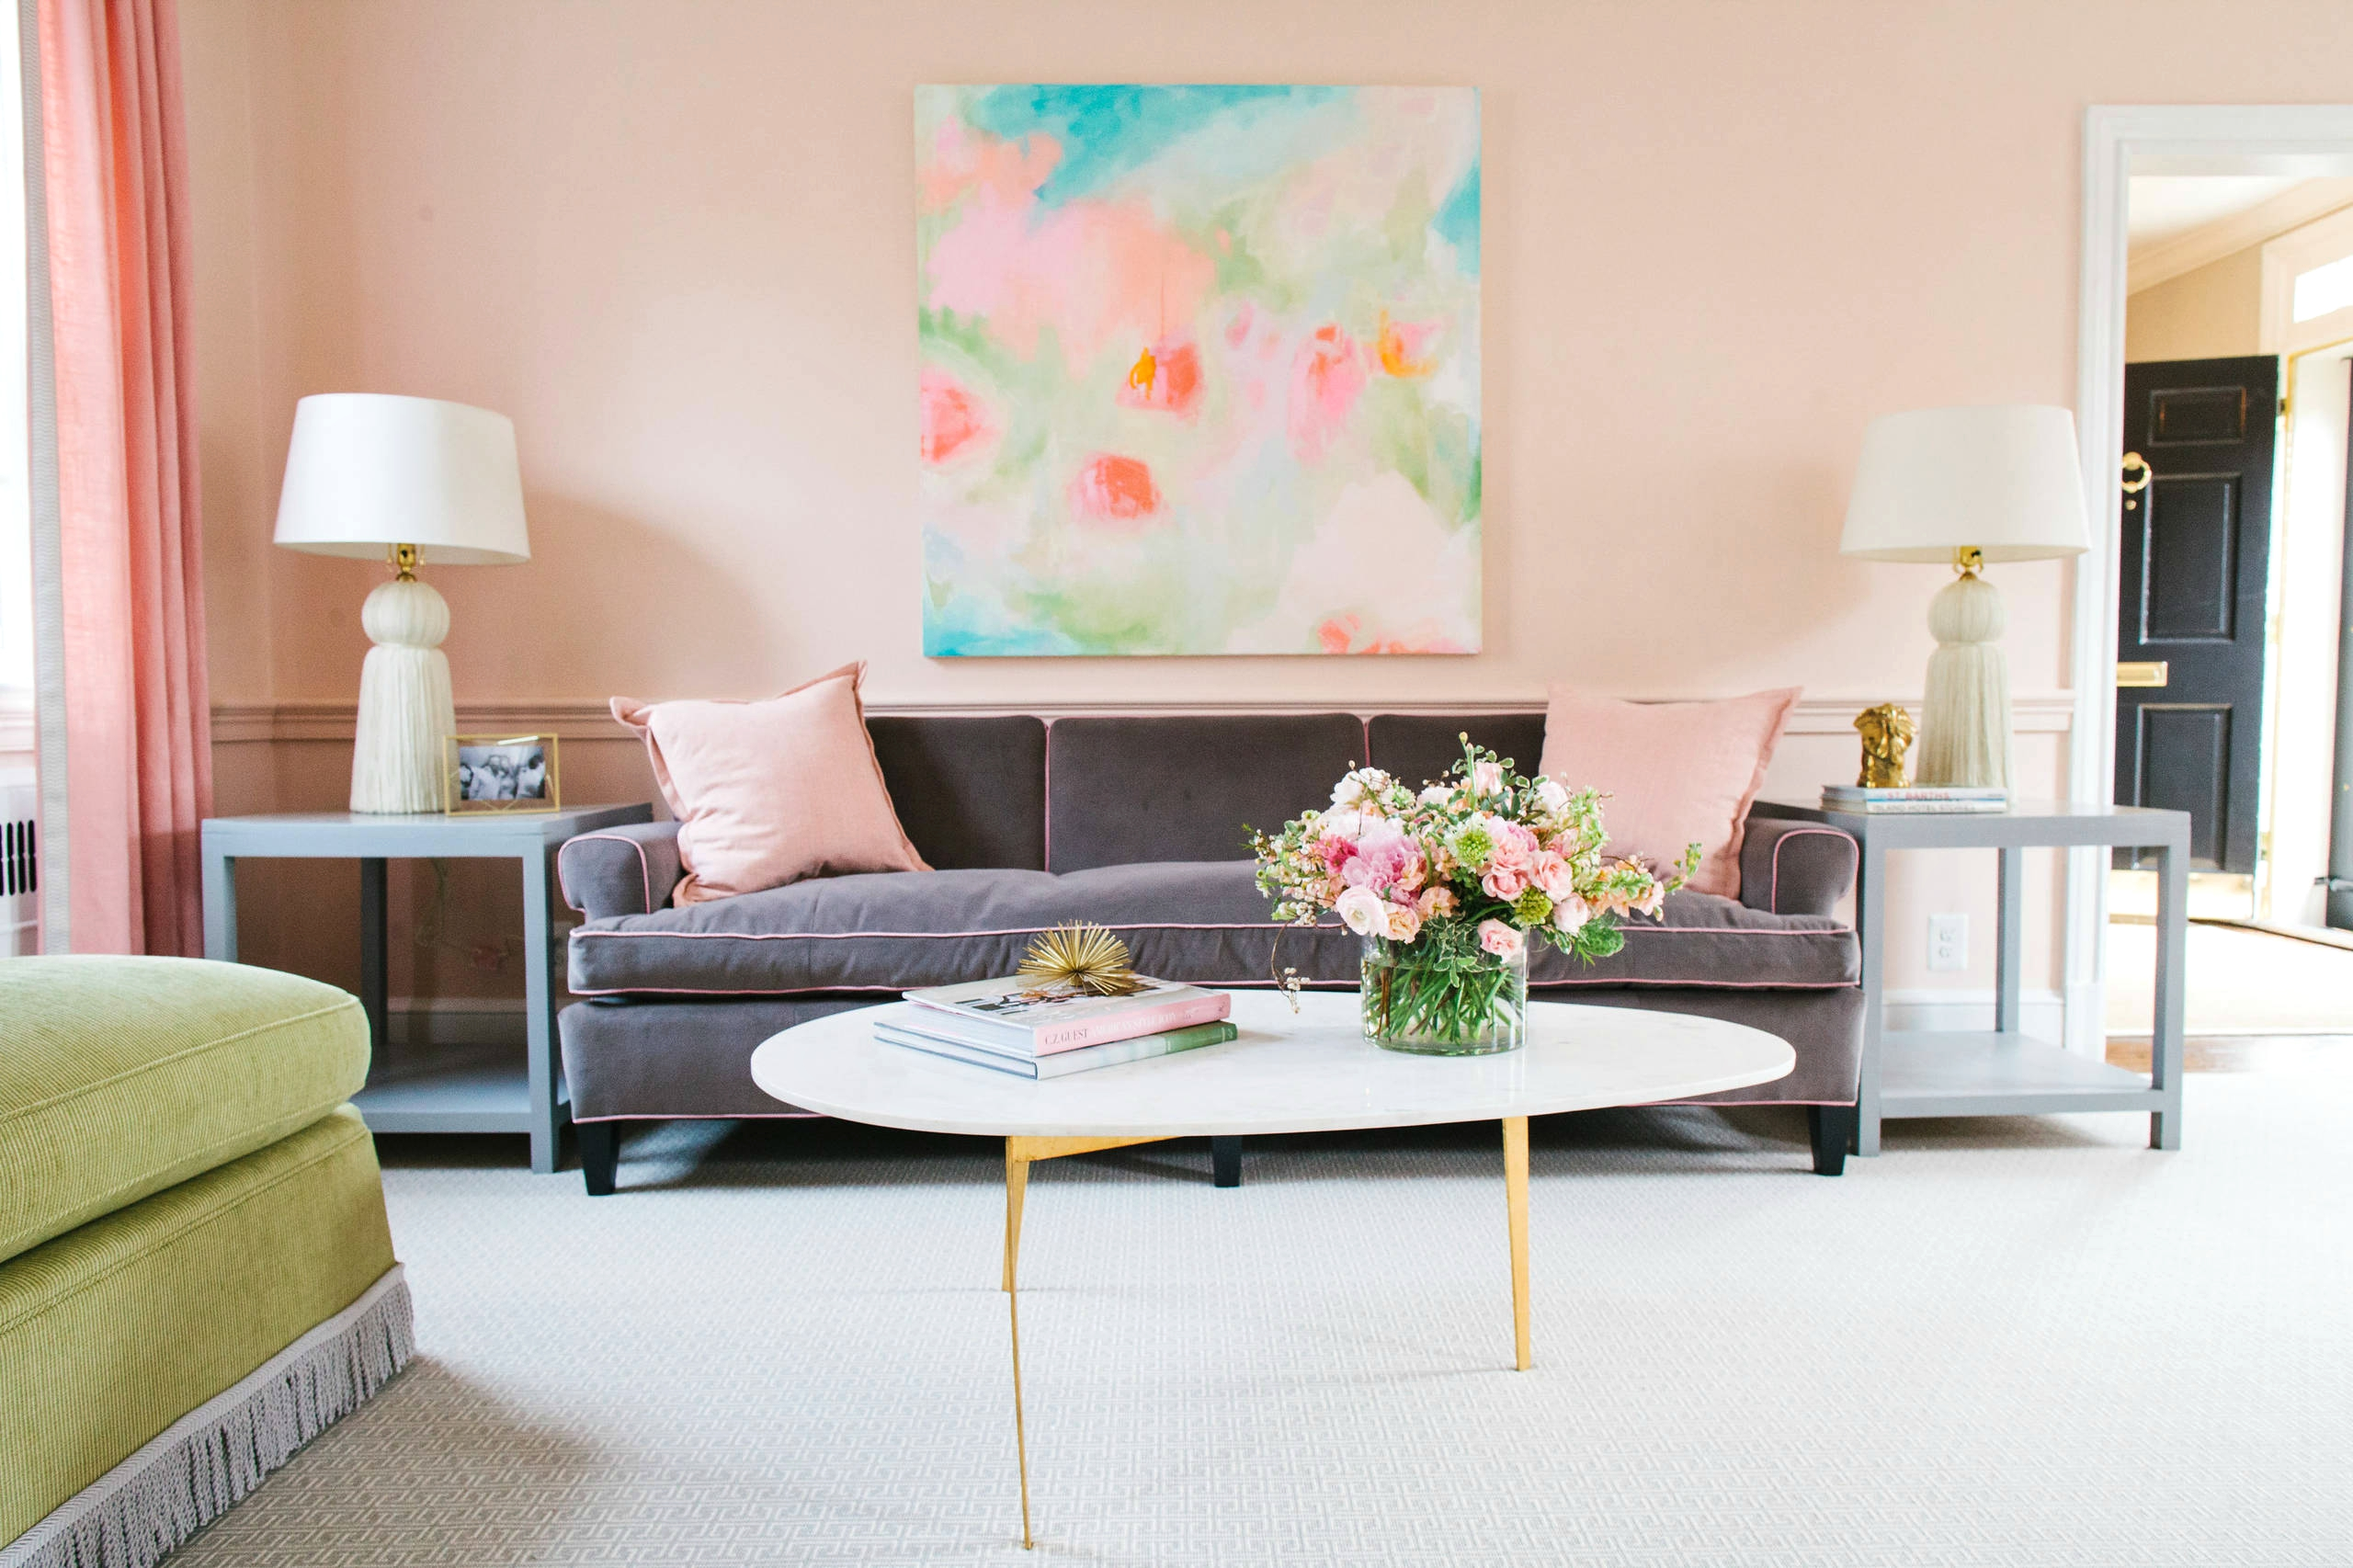 5 stunning pastel rooms - decorating with pantone 2016 color